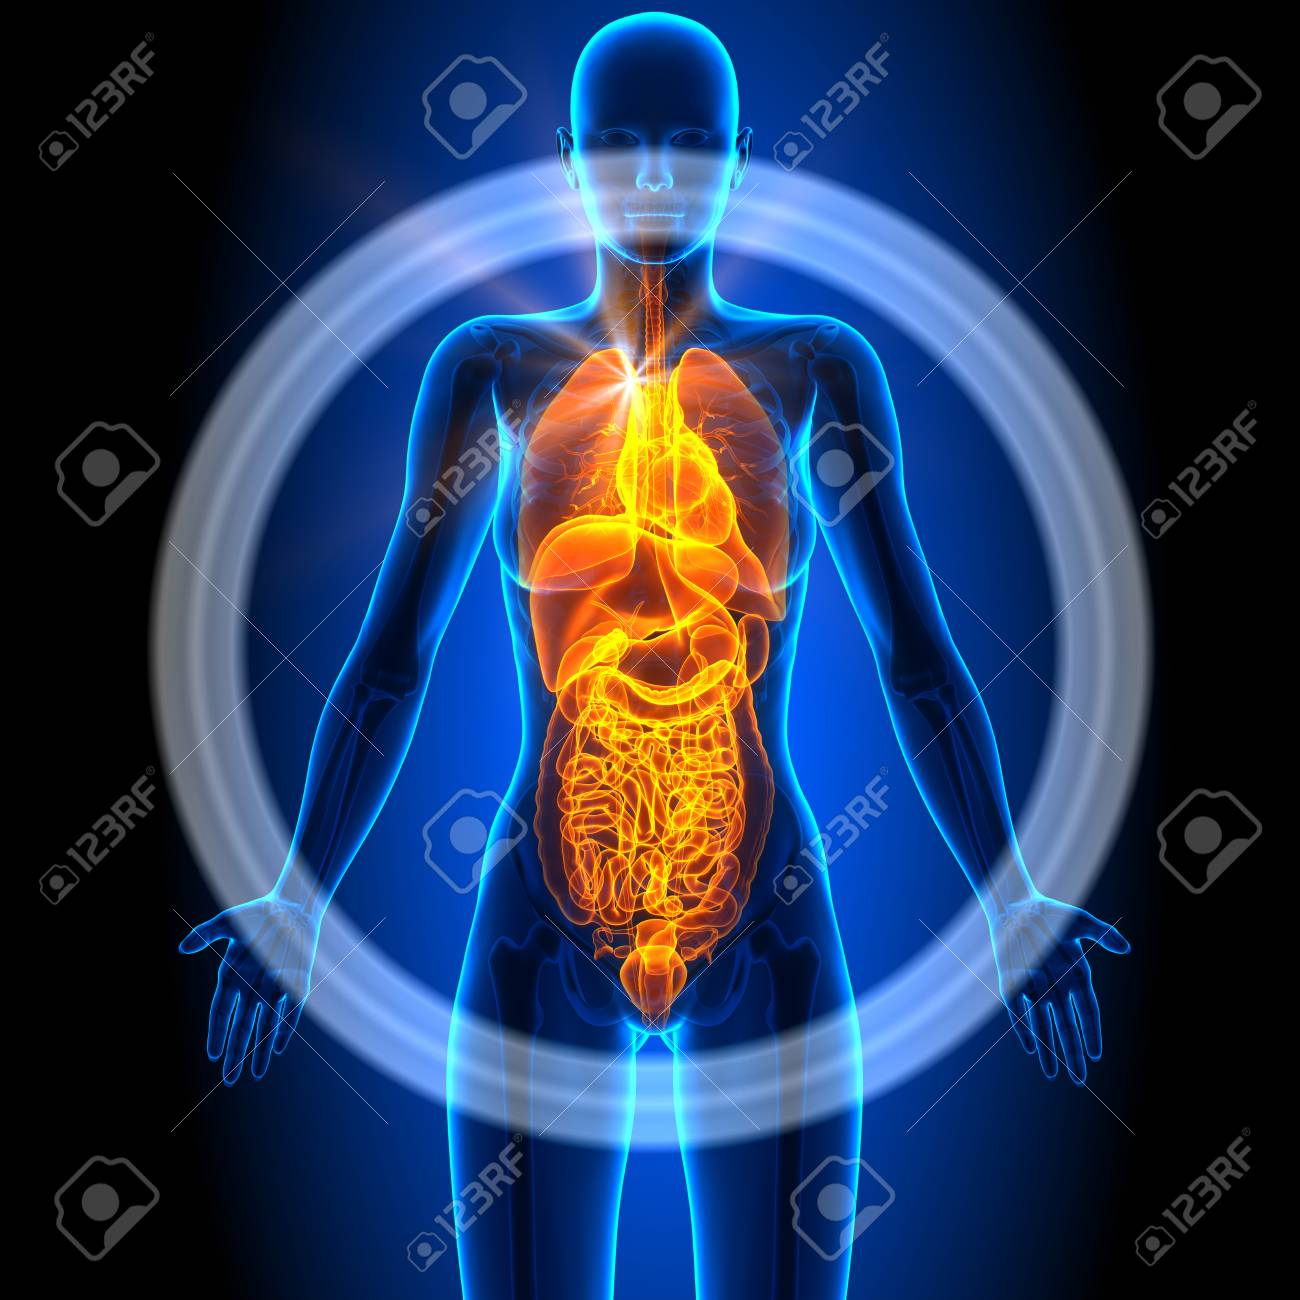 Female Organs Human Anatomy Stock Photo Picture And Royalty Free